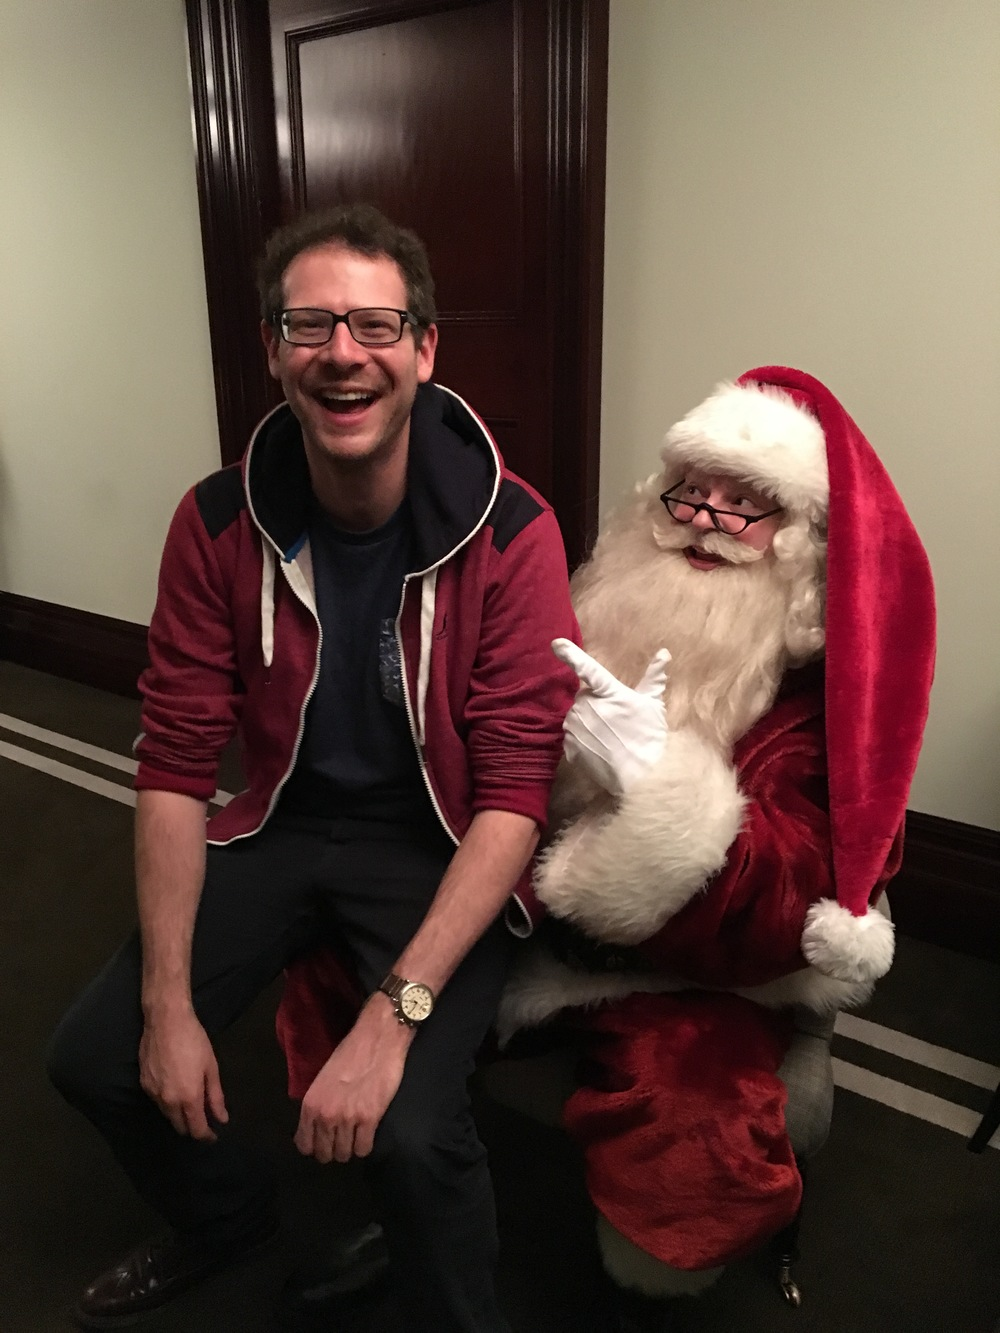 Olly meets Nigel Harvey, aka Celebrity Santa